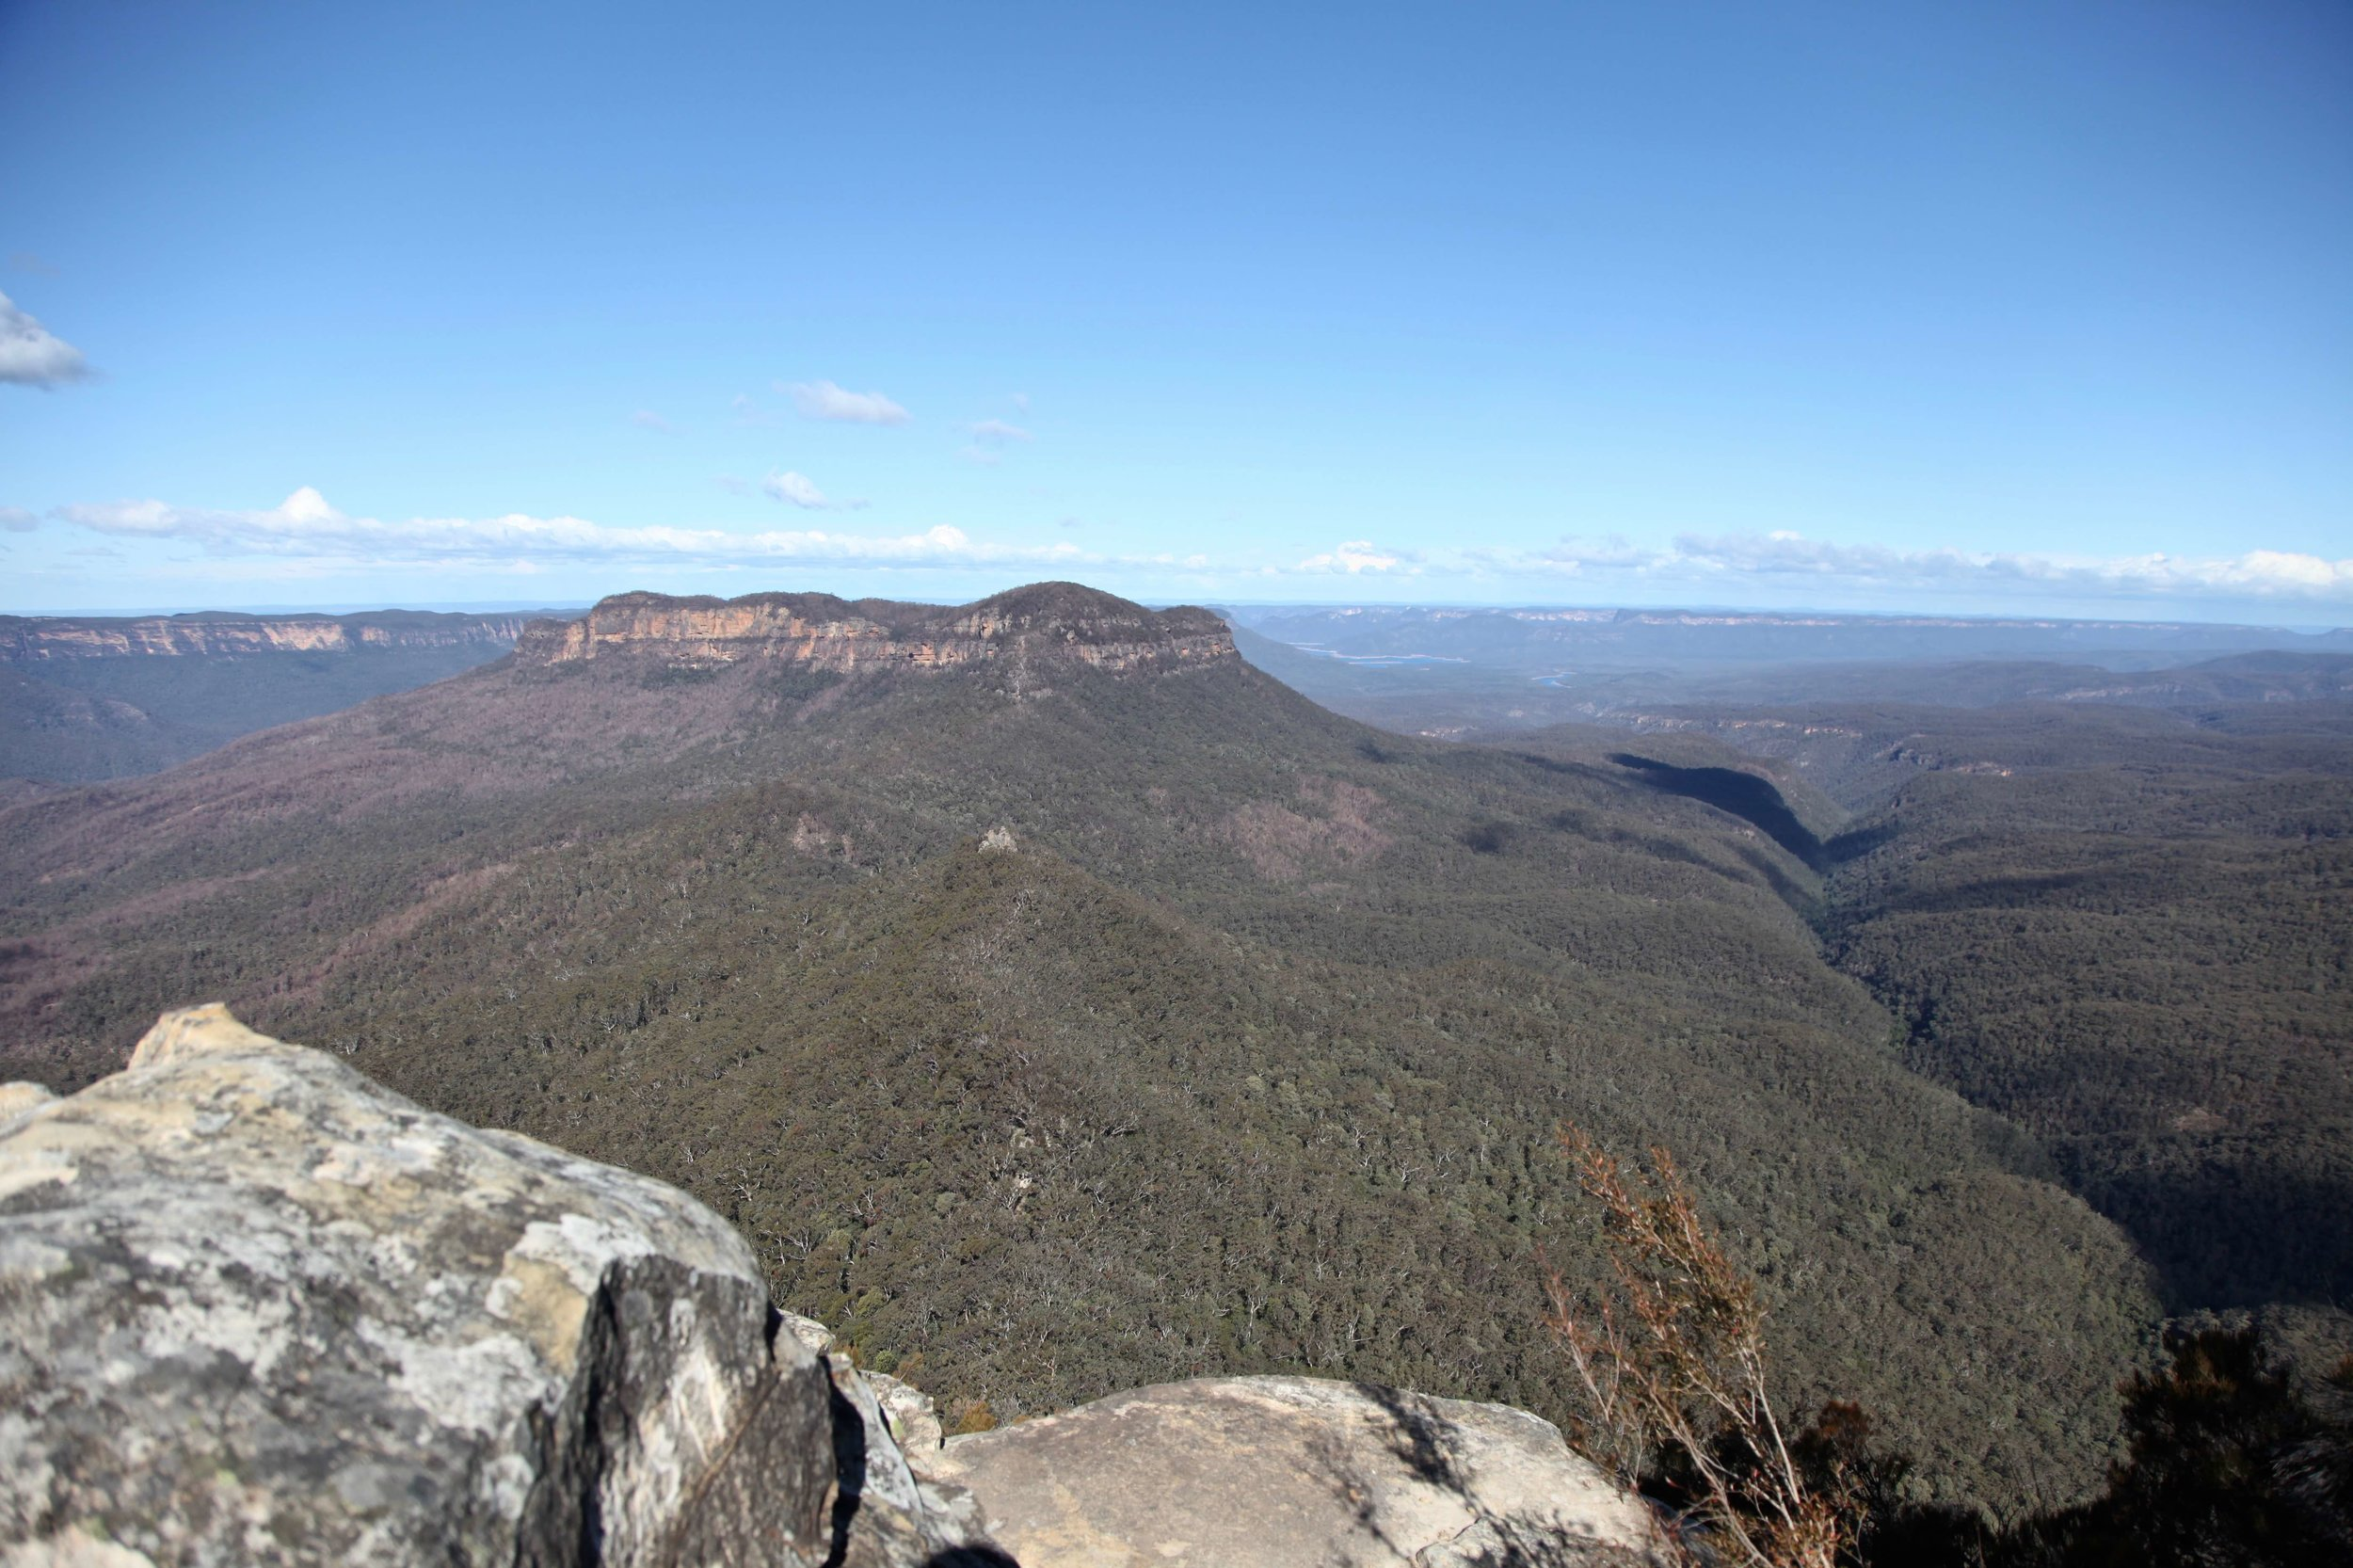 The view of Mount Solitary from the Castle Head track on Narrow Neck at Katoomba.